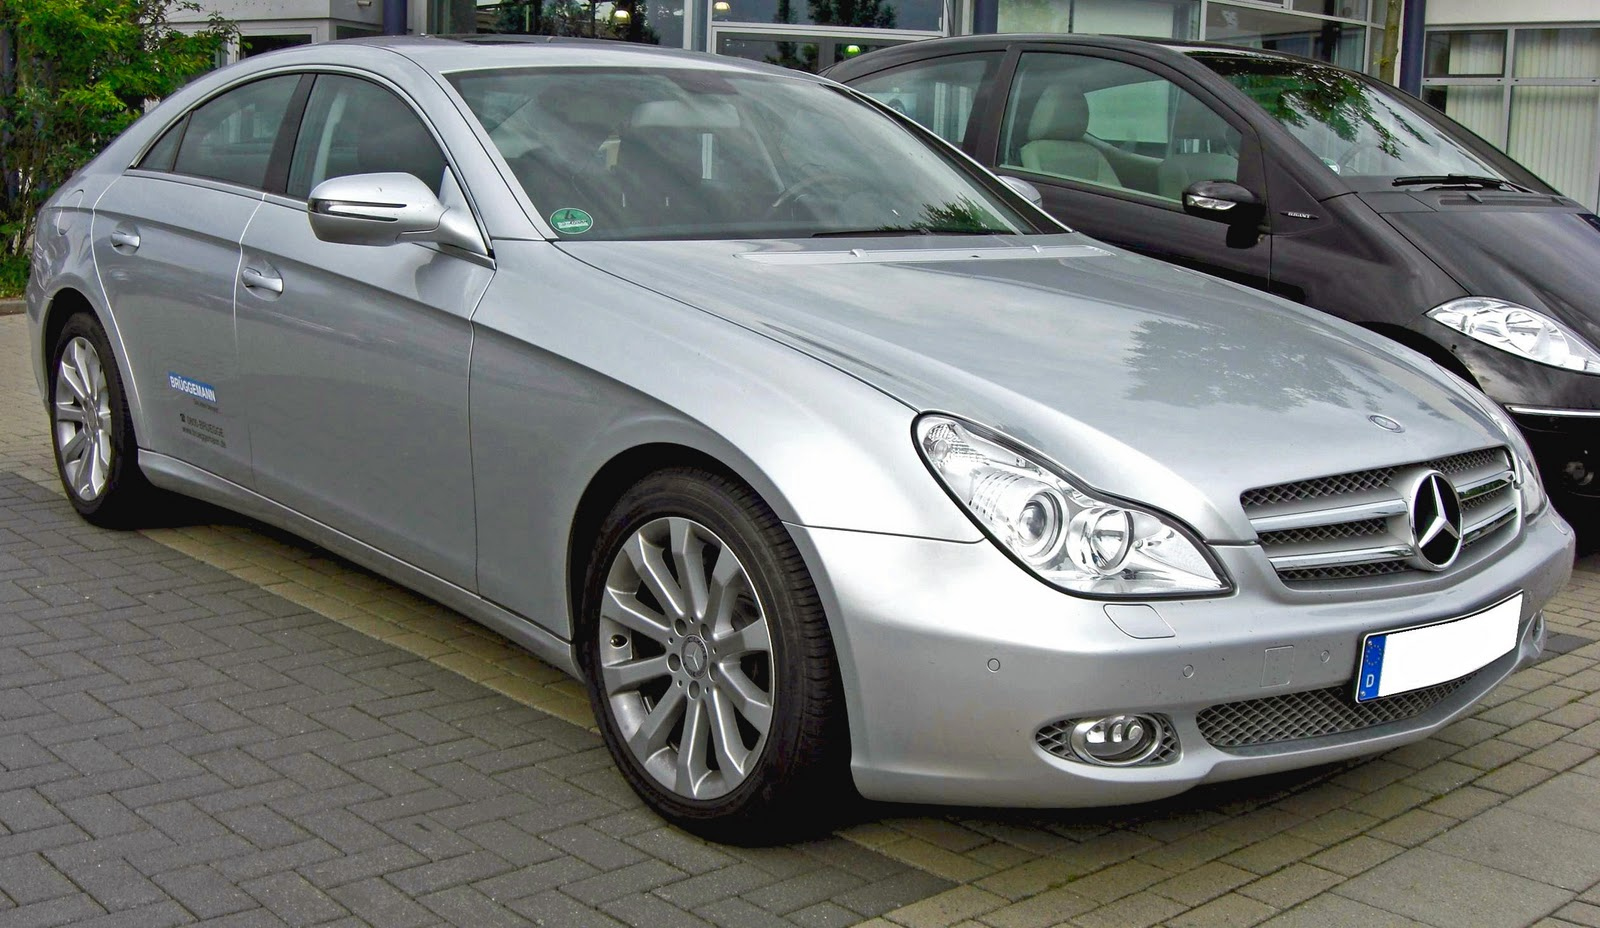 Car dinal mercedes benz cls top class cars model mercedes cls for Cars of mercedes benz